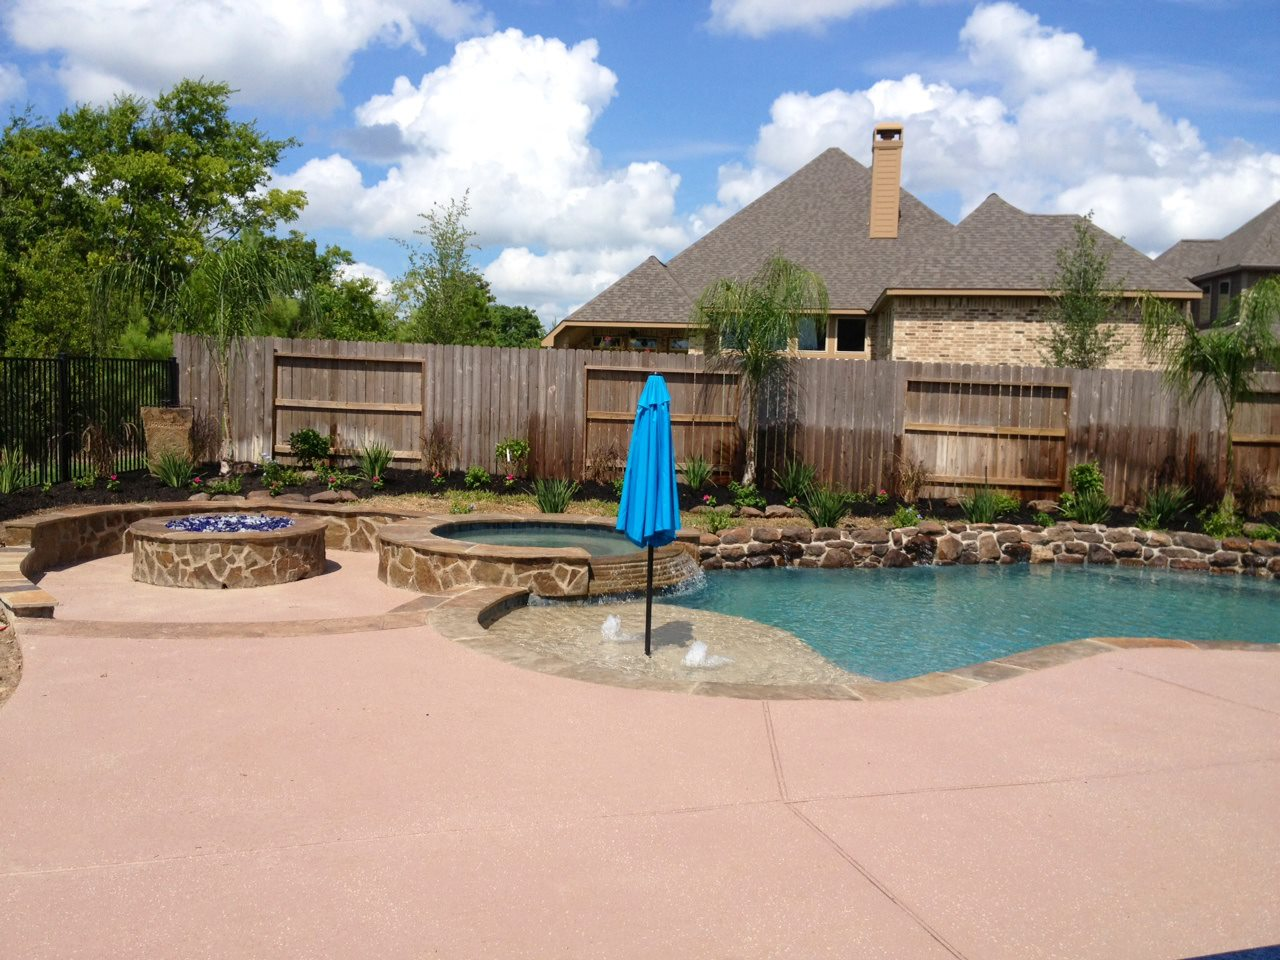 Lovelund pool and kitchen patio covers katy tx patio builder katy texas for Swimming pool builders katy tx